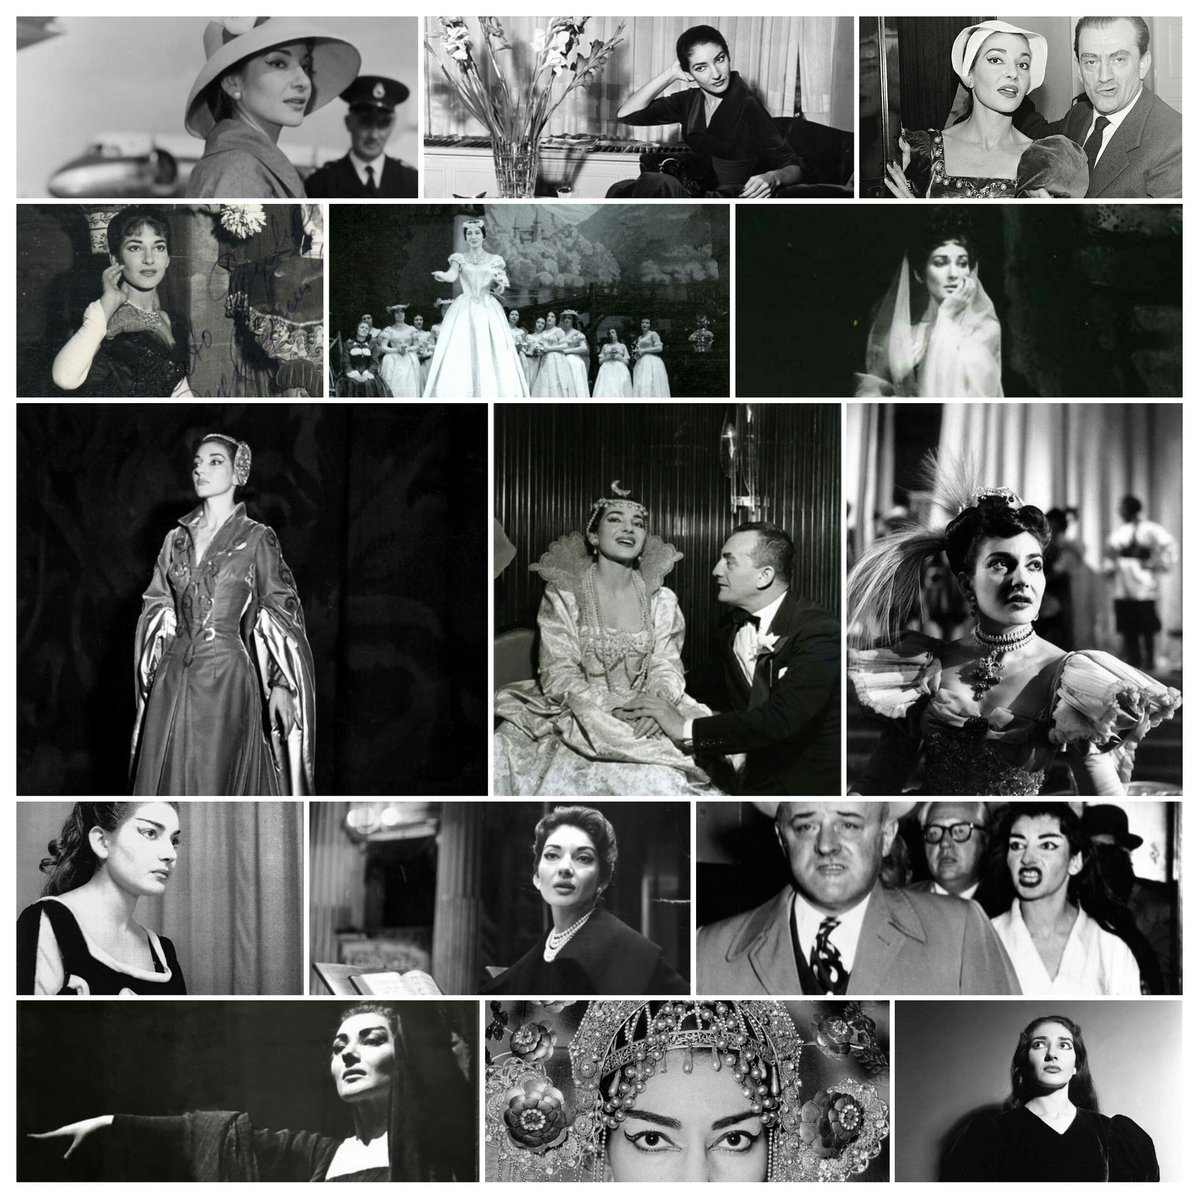 It's the anniversary of the passing of La Divina...here's a collage of some favourite photos #MariaCallas https://t.co/gAWeP4nkqn